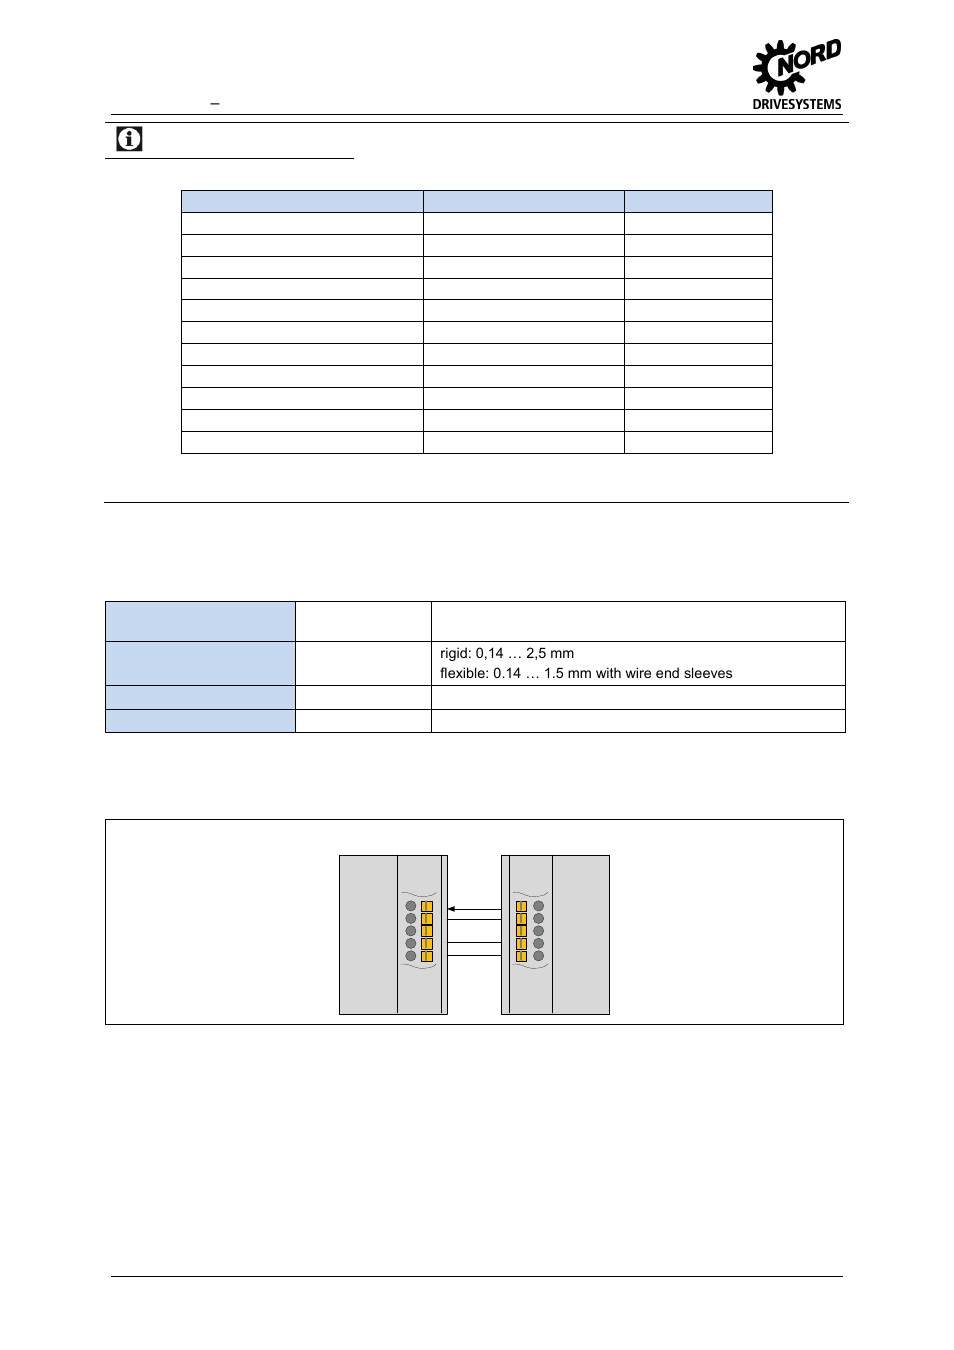 Connections Information M12 Round Plug Connectors Nord Electrical Bus Wiring Diagram Drivesystems Ti 275281206 User Manual Page 4 9